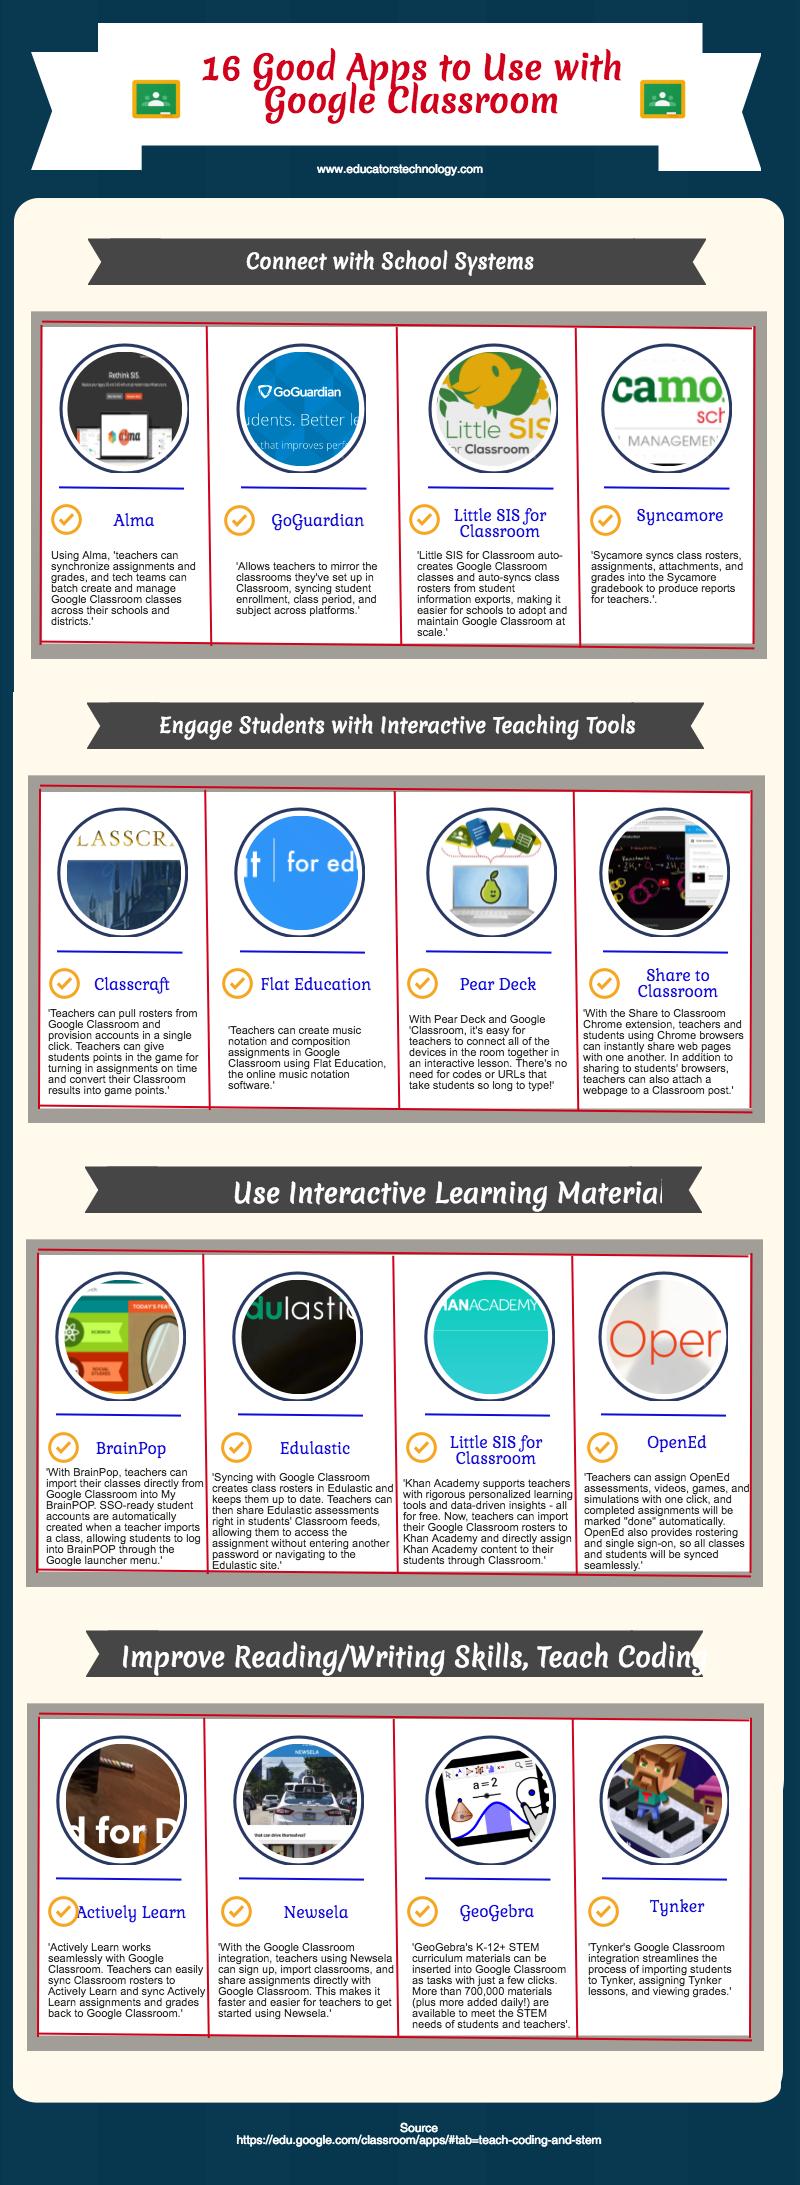 14 Great Infographic Examples for Education You Should